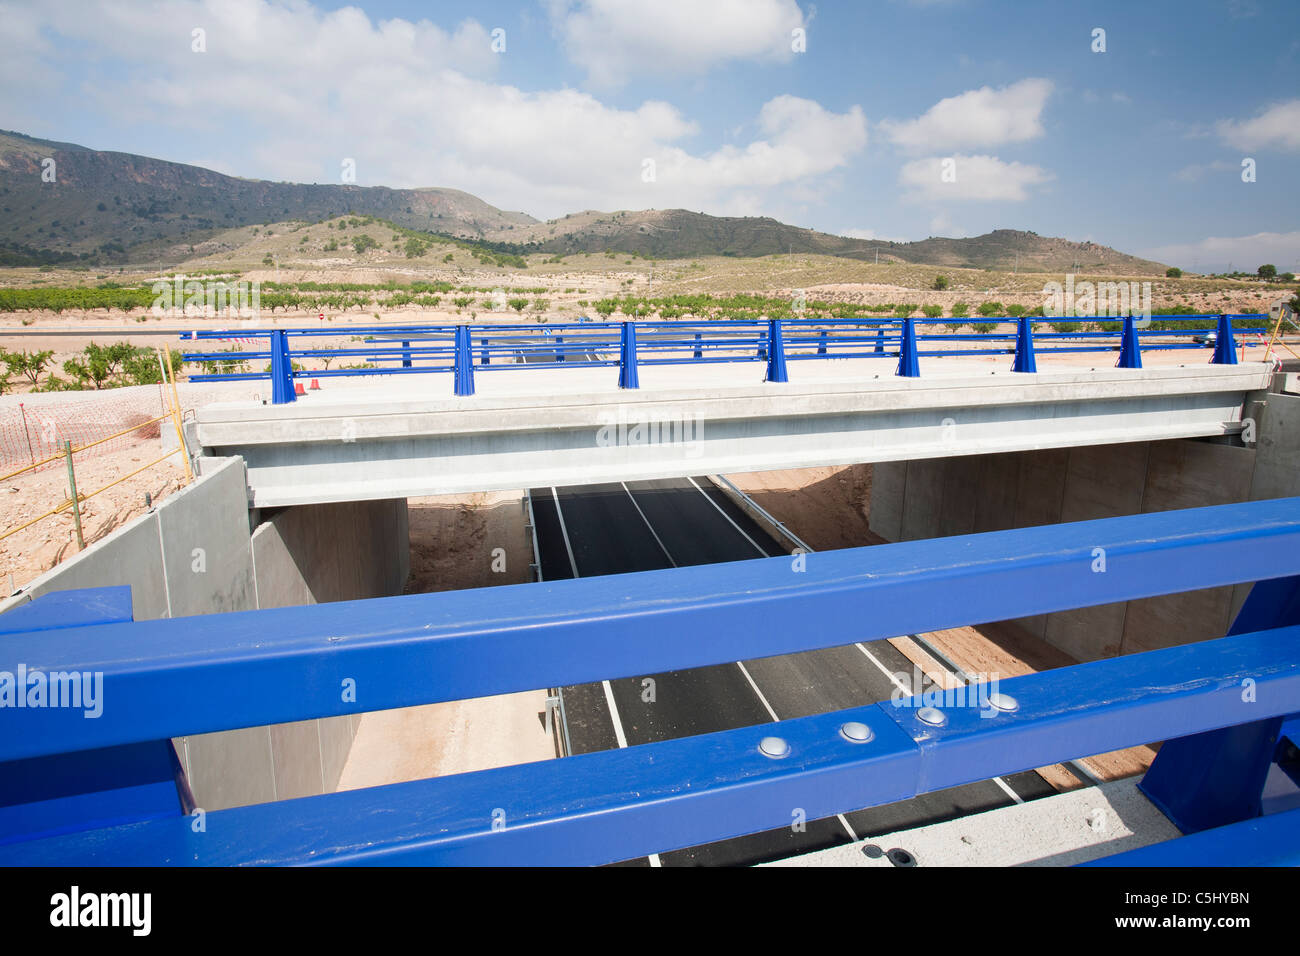 A new road being constructed in Andalucia, Spain. - Stock Image